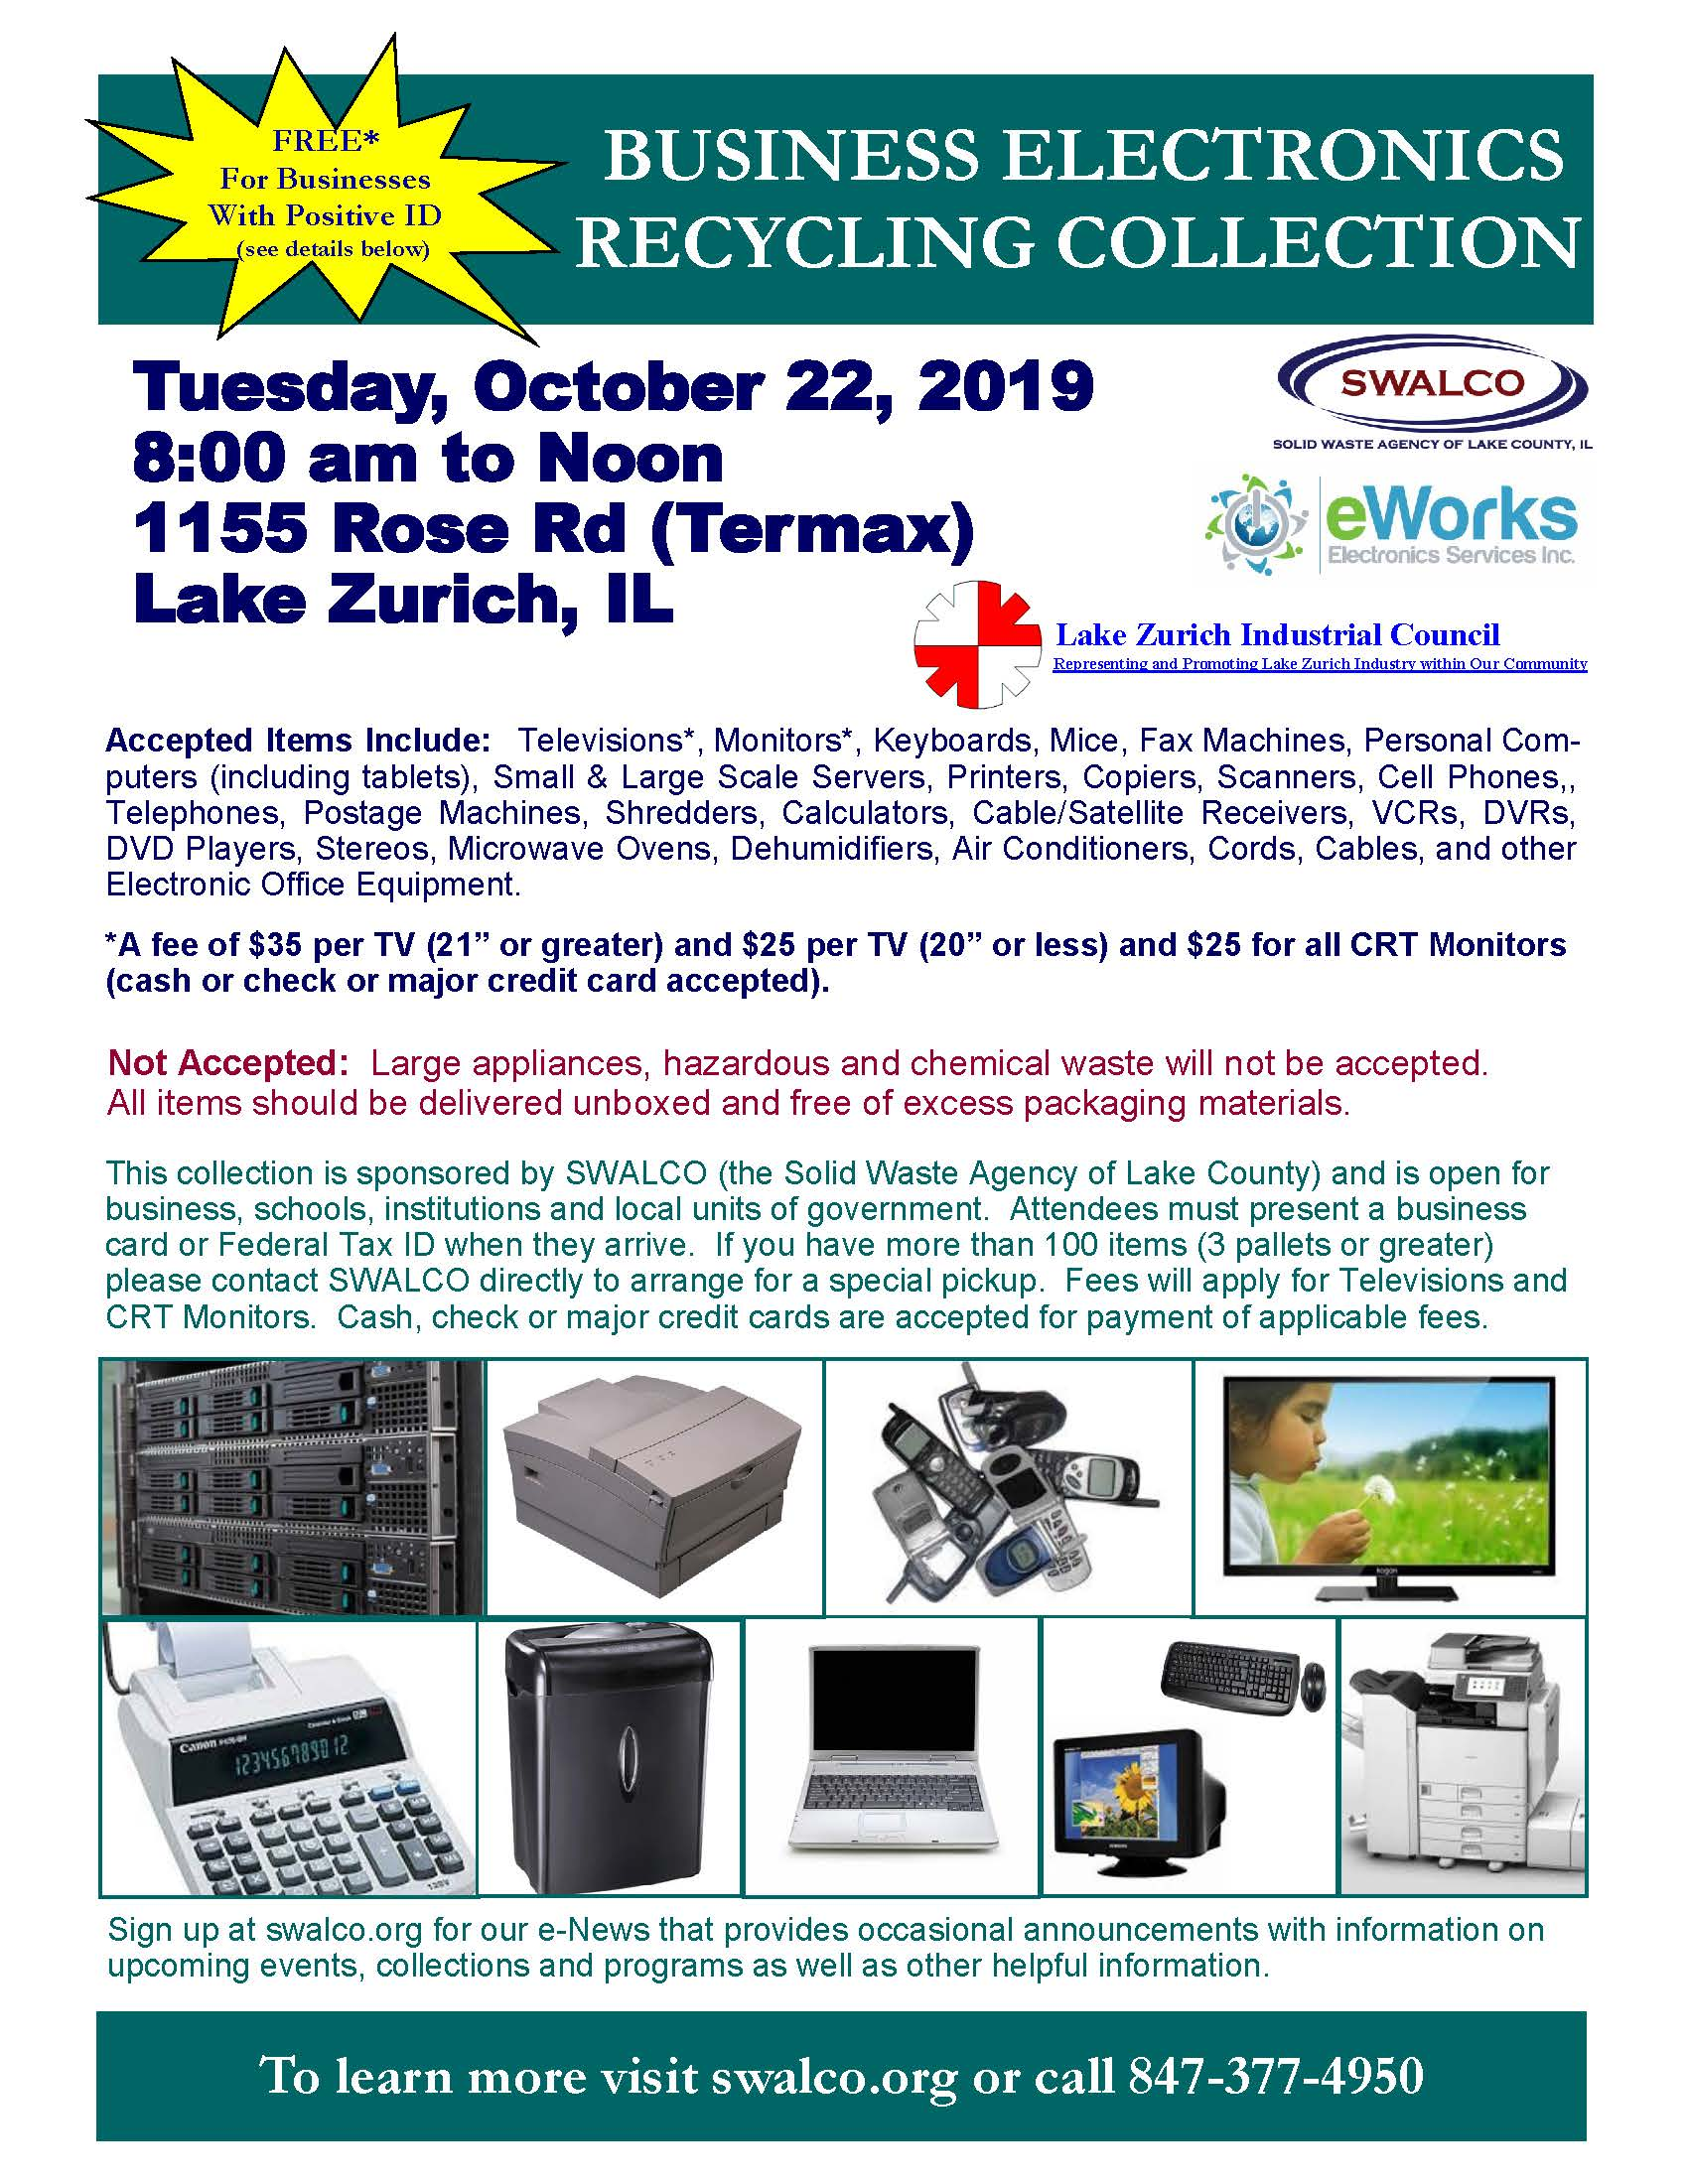 Electronics E-Works Termax Lake Zurich Oct 22, 2019